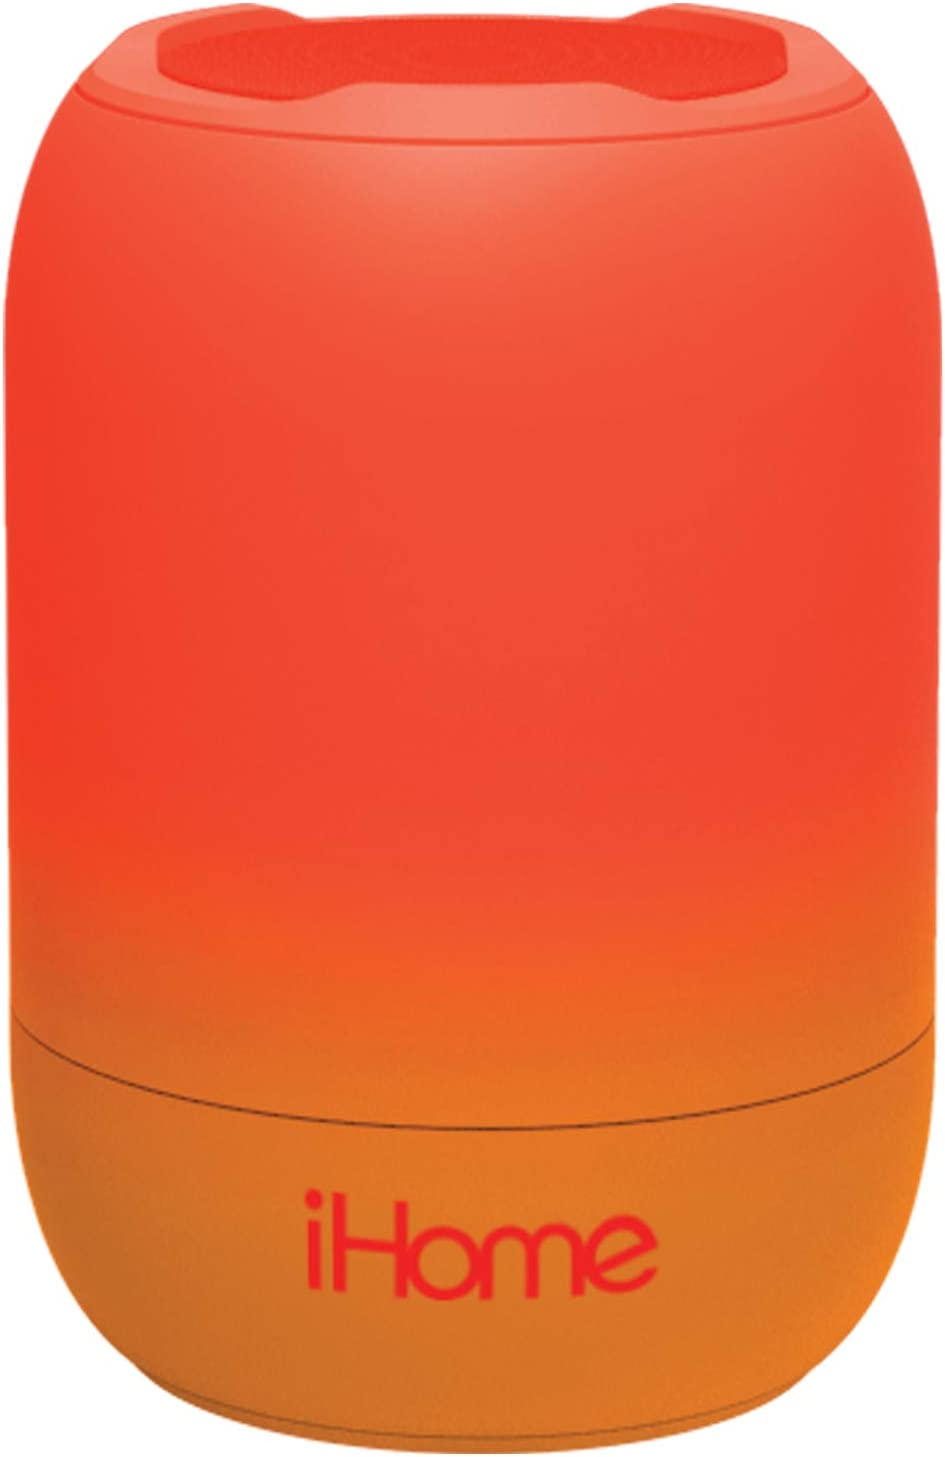 iHome PlayFade Portable Bluetooth Speaker - Water-Resistant Rechargeable Audio Device for Outdoor Events, Pool Party, Beach, Camping (Model iBT400R) RED